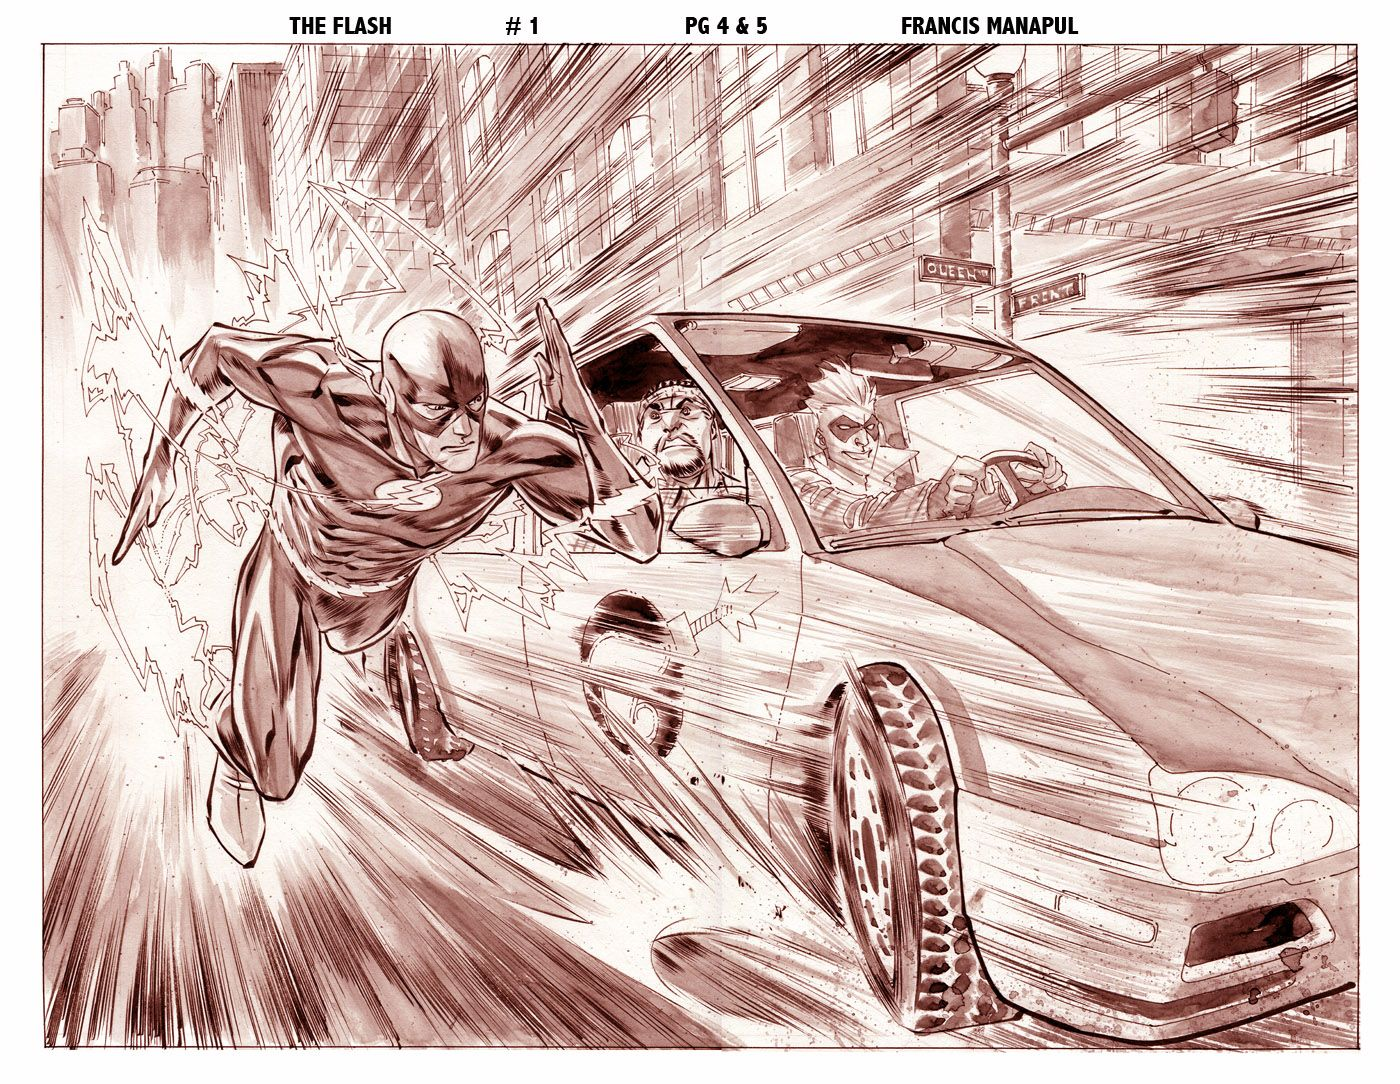 1400x1084 Flash Comic Drawing The Flash 1 Preview Pg 3n4 By Manapul